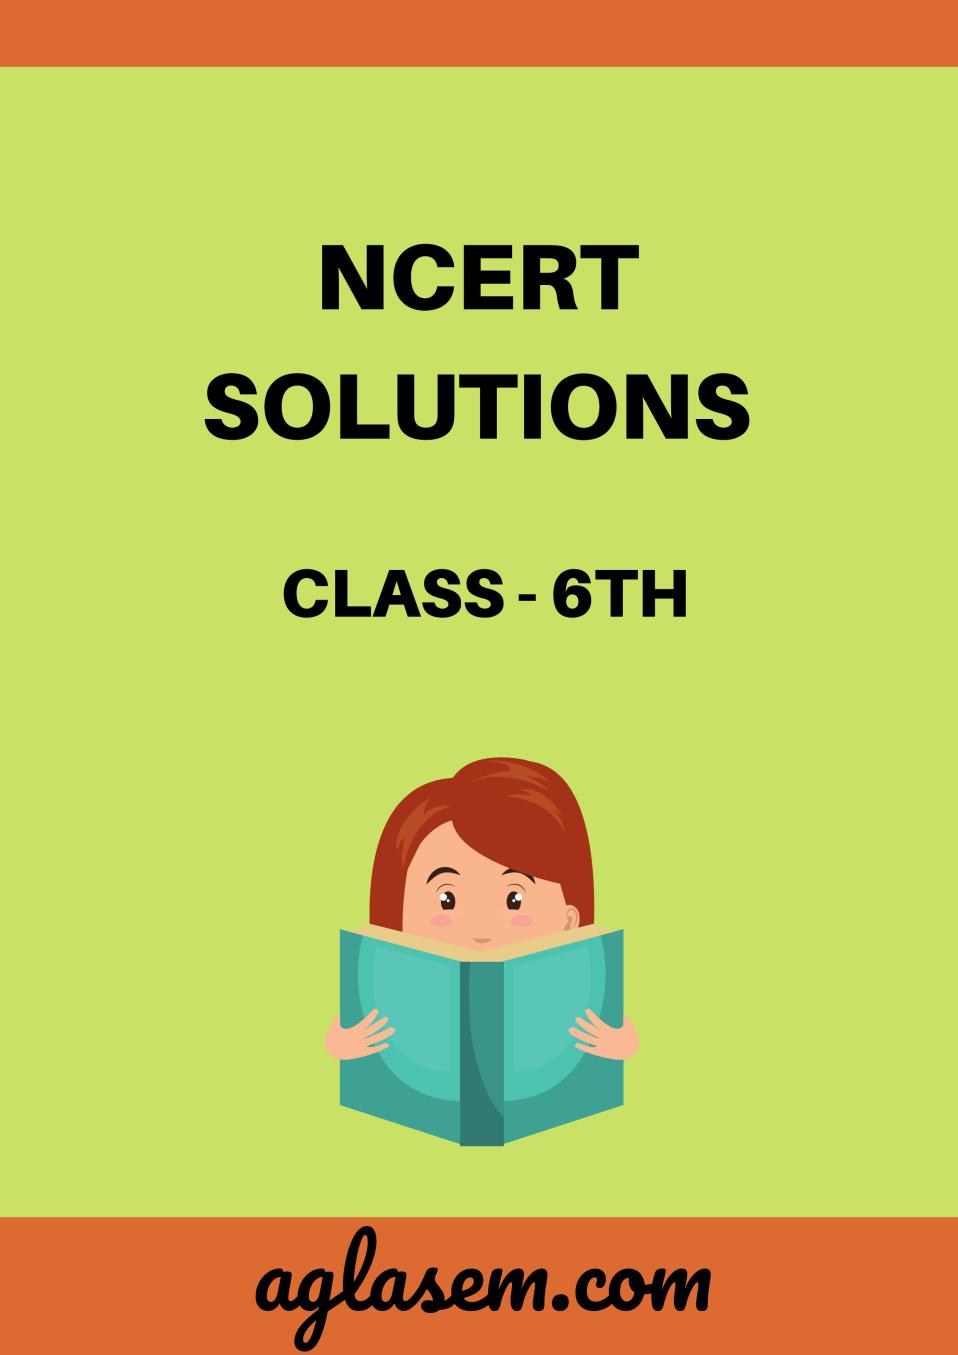 NCERT Solutions Class 6 Science Chapter 1 Food: Where Does It Come From?